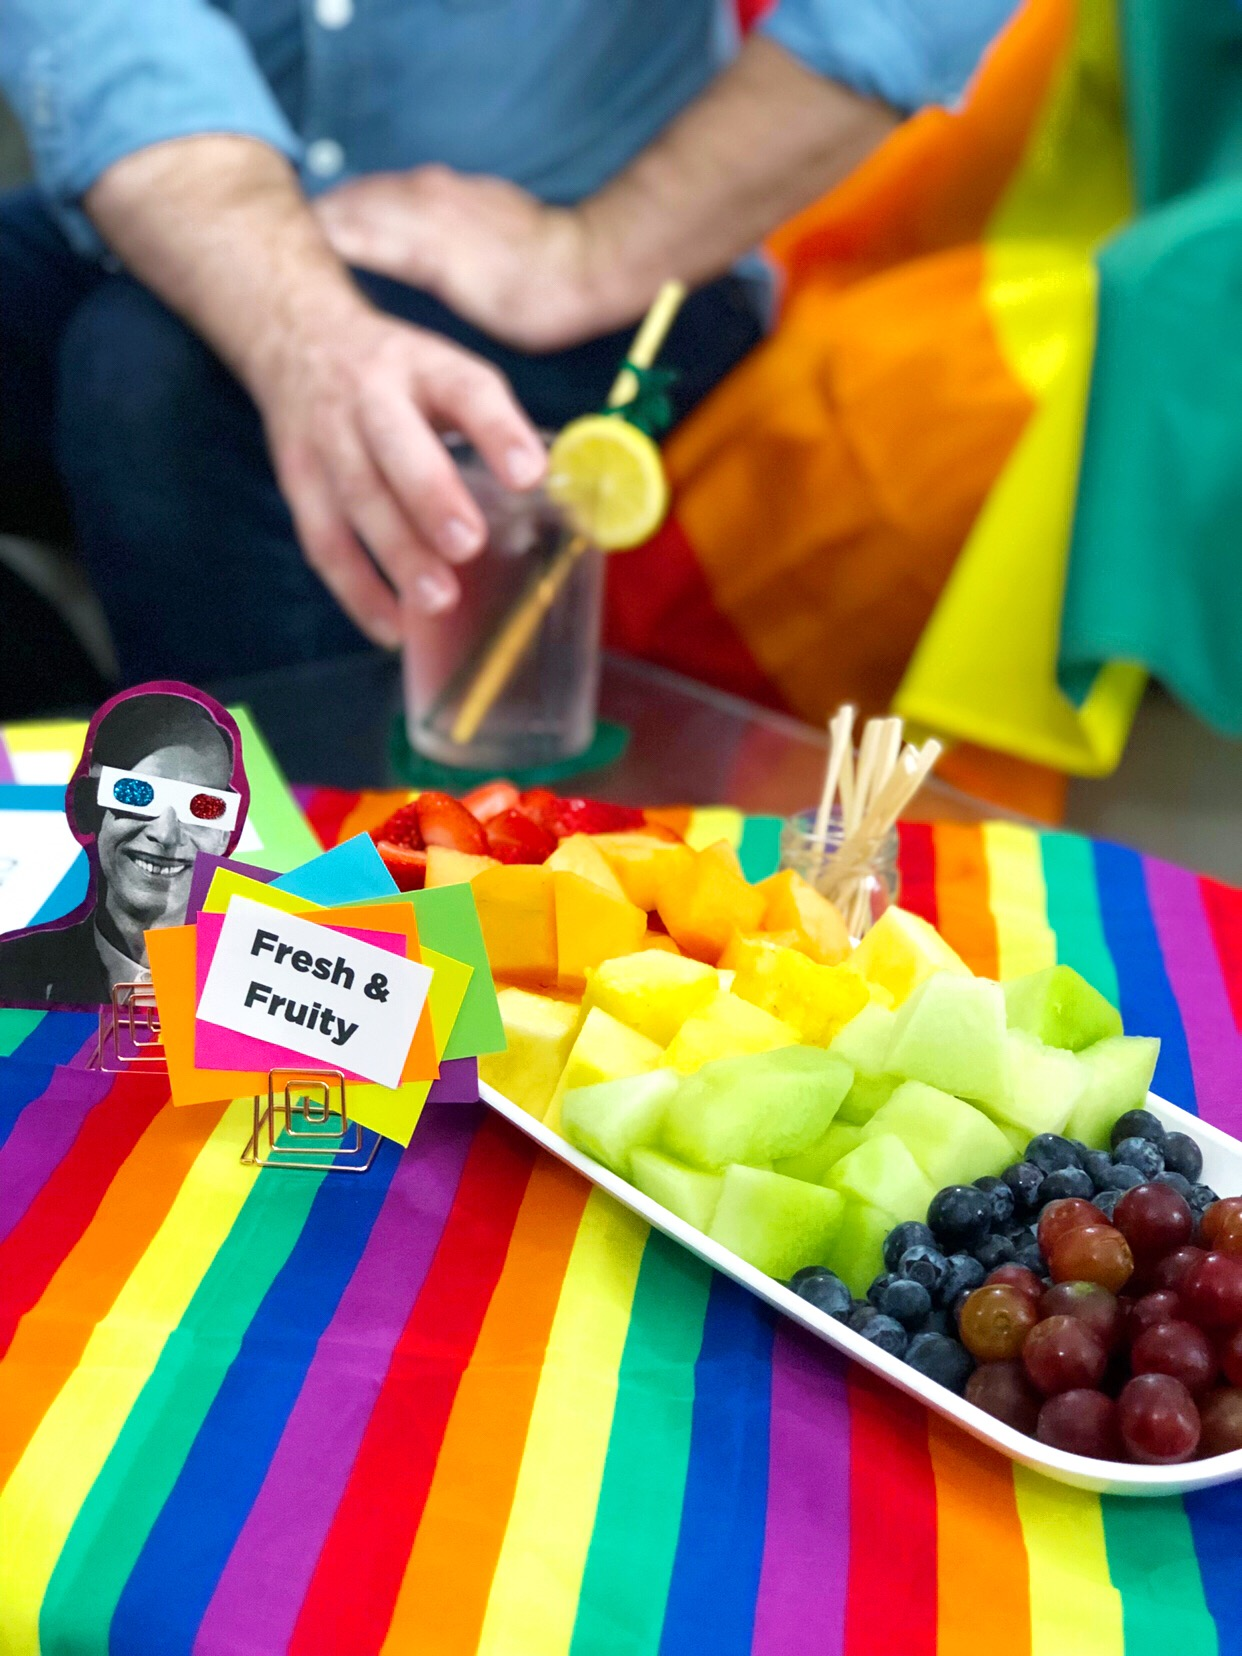 Tips, games and more for hosting the ultimate Rainbow Party for Pride!  How to Celebrate Pride Month at Work, How to Celebrate Pride Month at Office How to Celebrate Pride Month at Home, How to Host a Party #TreetopiaLoudAndProud #TreetopiaPrideMonth #LoveEqualityPride #LoveIsLove #PrideParade #PrideMarch #PrideEvents #wreath #cher #gaypride #gayboyfriends #prideswag #pridecocktail #rupaul #rupaulsdragrace